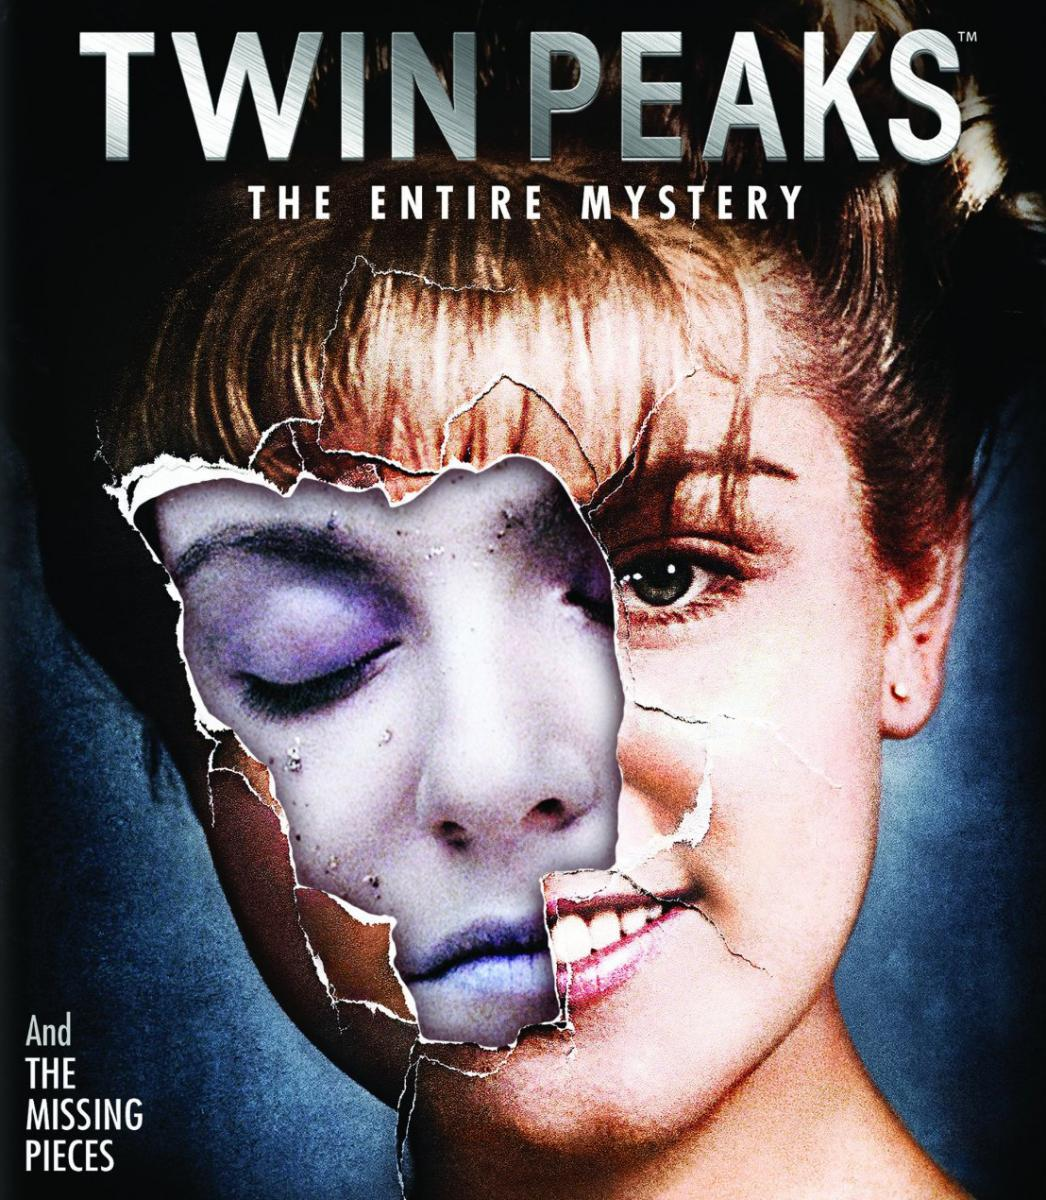 Twin Peaks: Las Piezas Que Faltan, questions in a world of blue